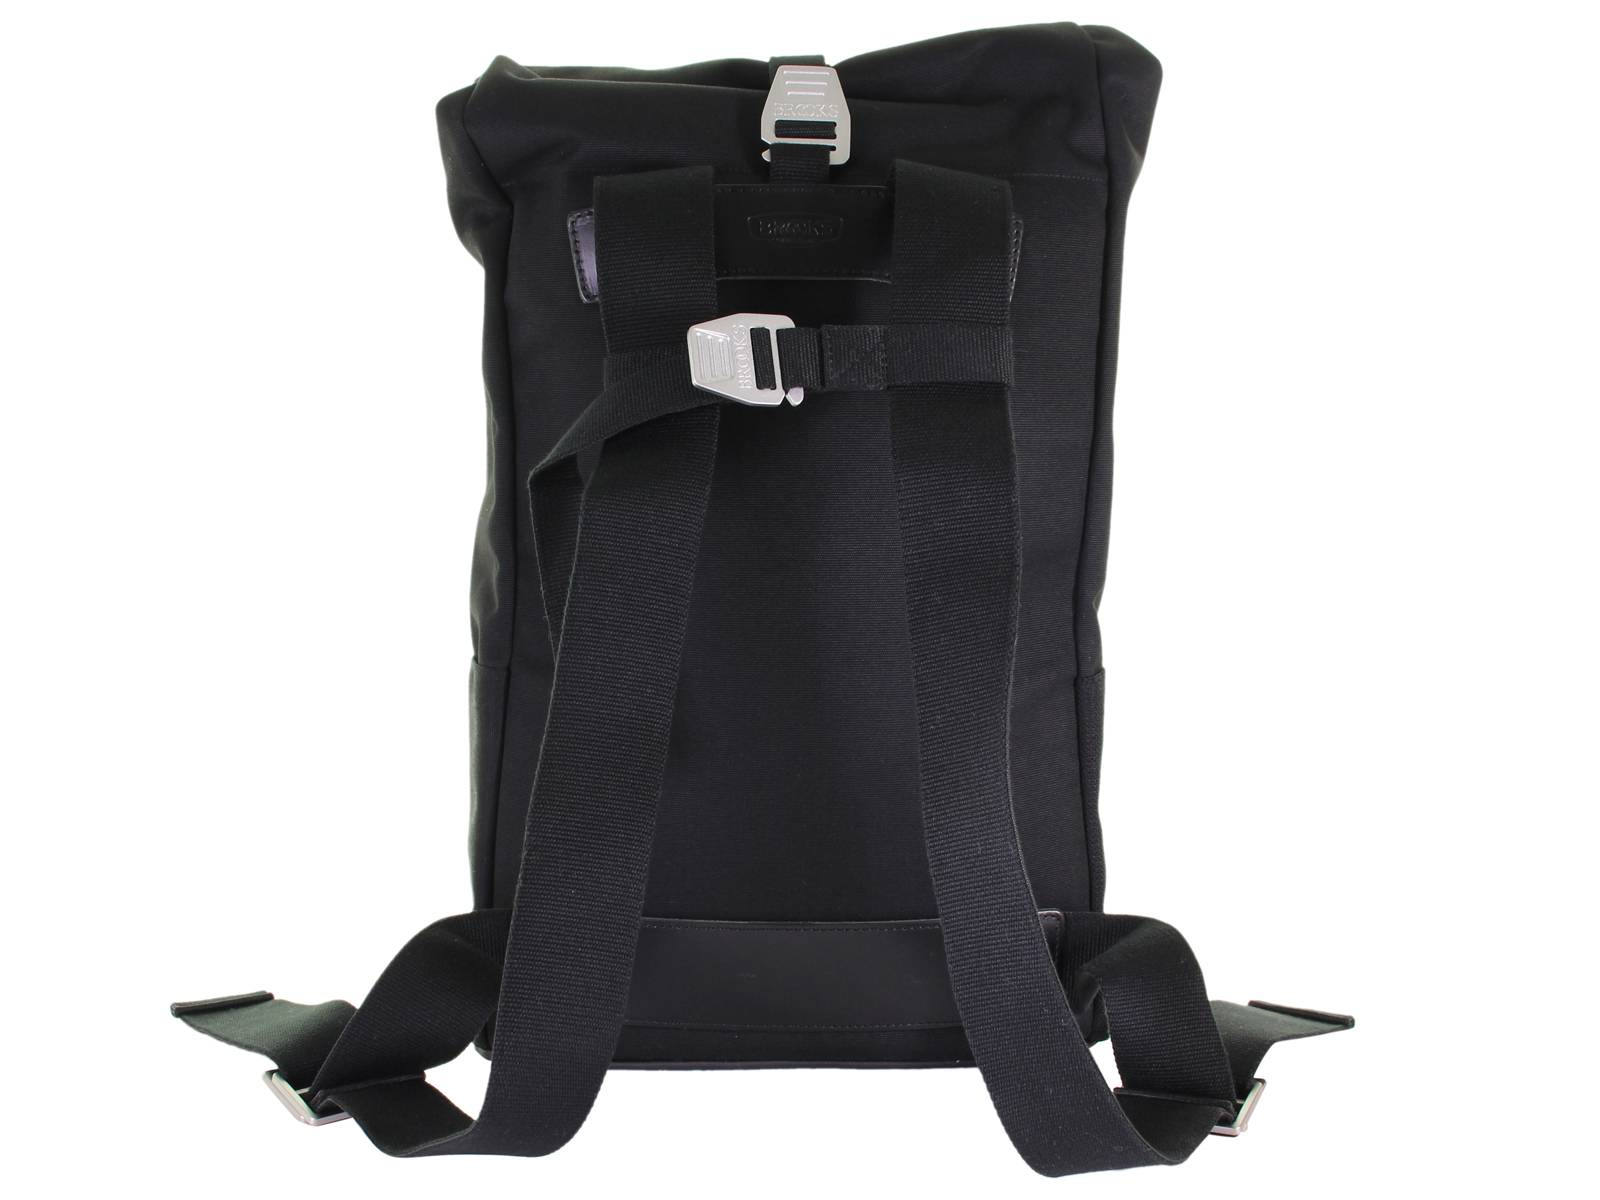 brooks fahrradtasche rucksack hackney schwarz fahrradkomfort. Black Bedroom Furniture Sets. Home Design Ideas